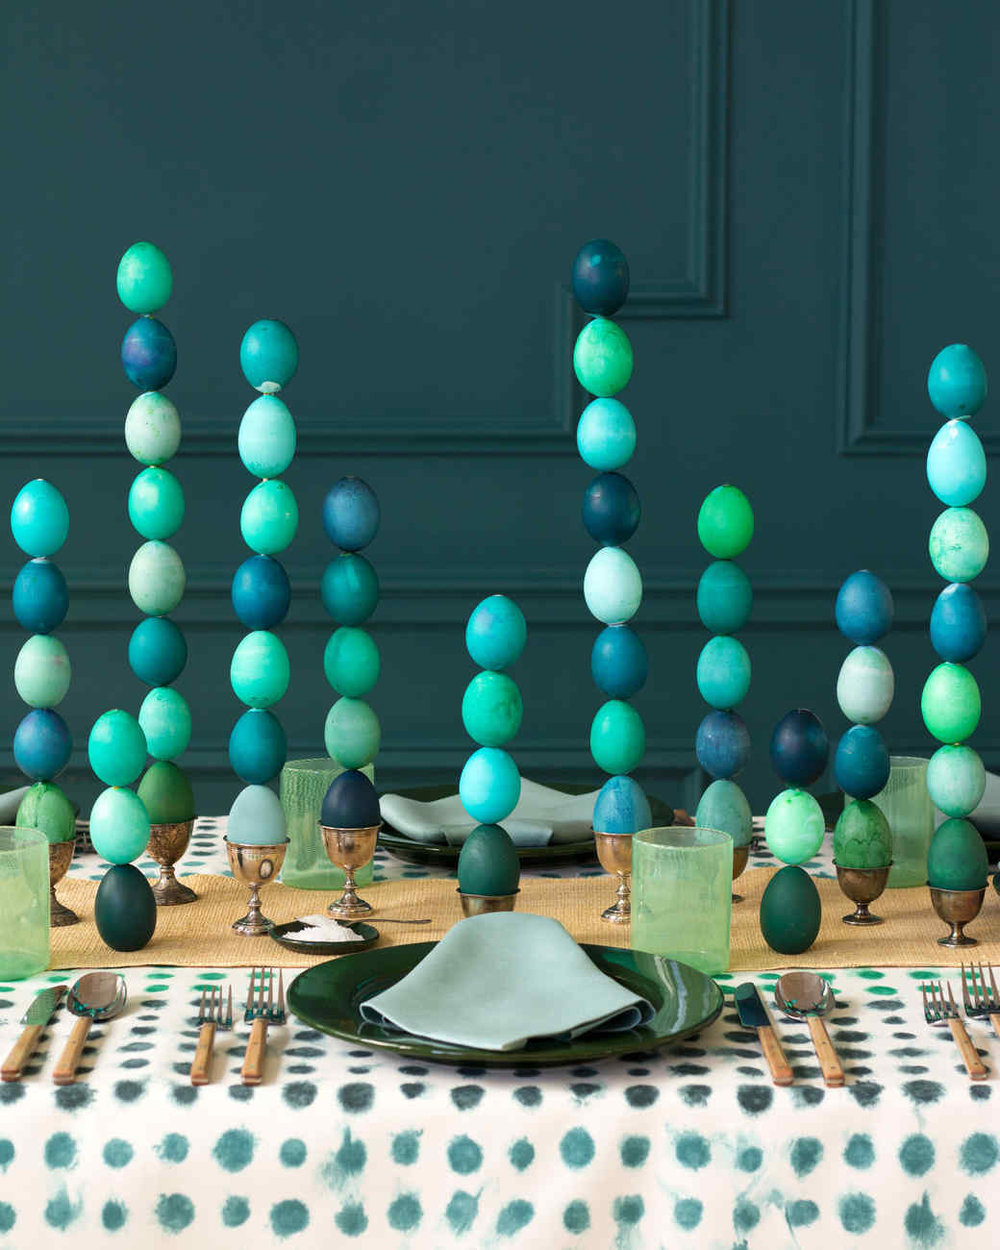 stacked-easter-egg-tower-centerpiece-0218_vert.jpg